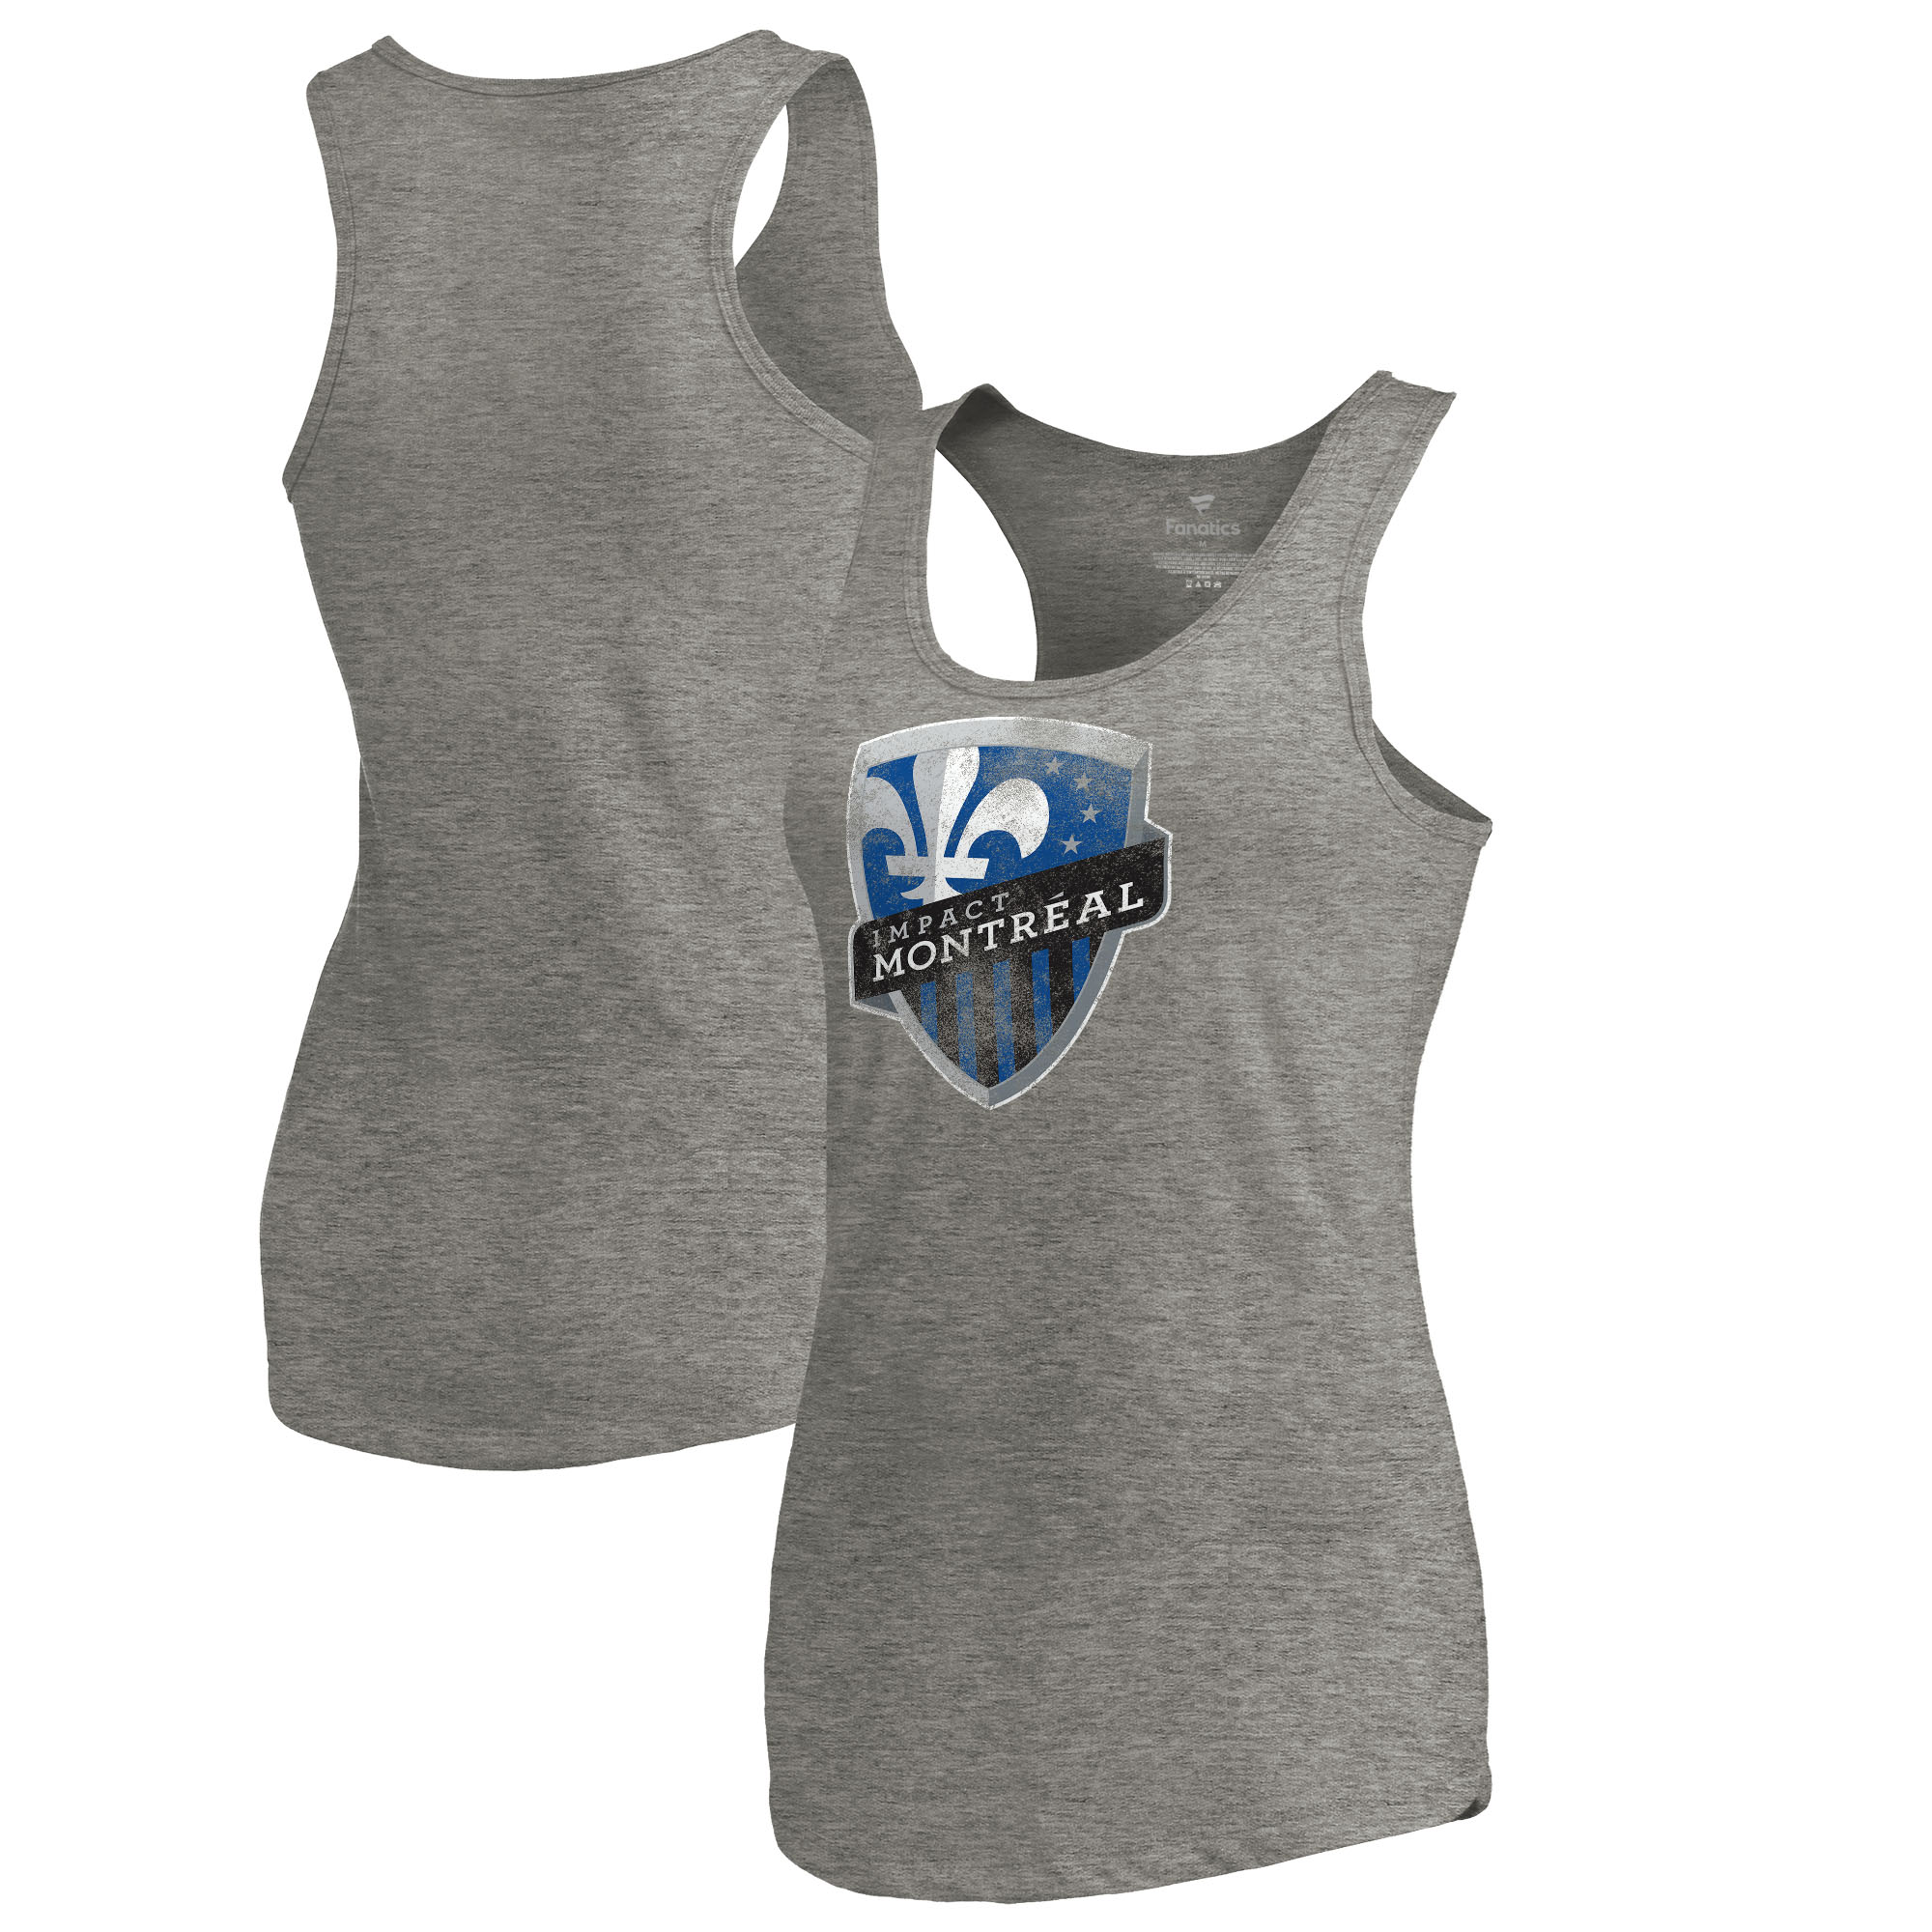 Montreal Impact Fanatics Branded Women's Distressed Primary Logo Tri-Blend Tank Top - Heathered Gray